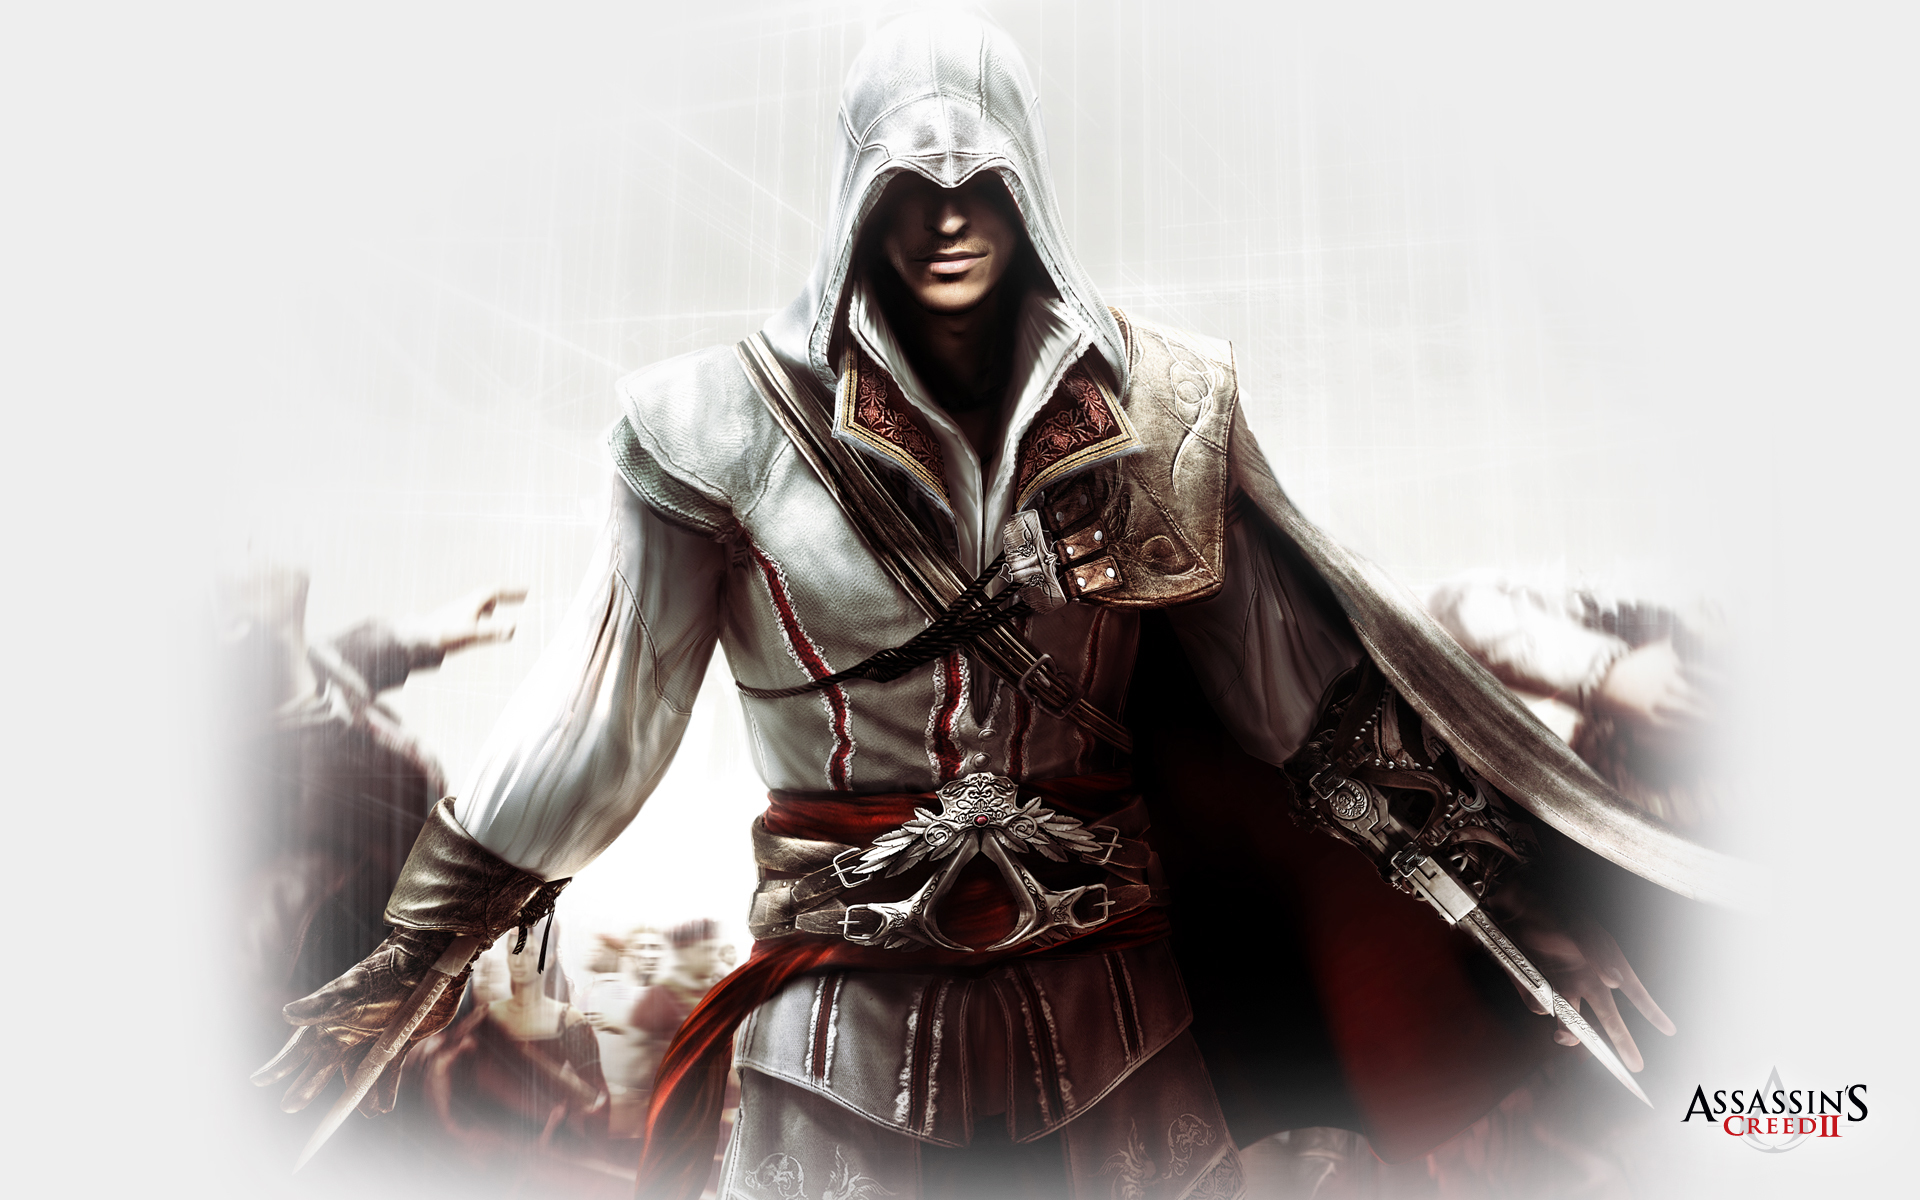 20126 download wallpaper Games, Assassin's Creed screensavers and pictures for free